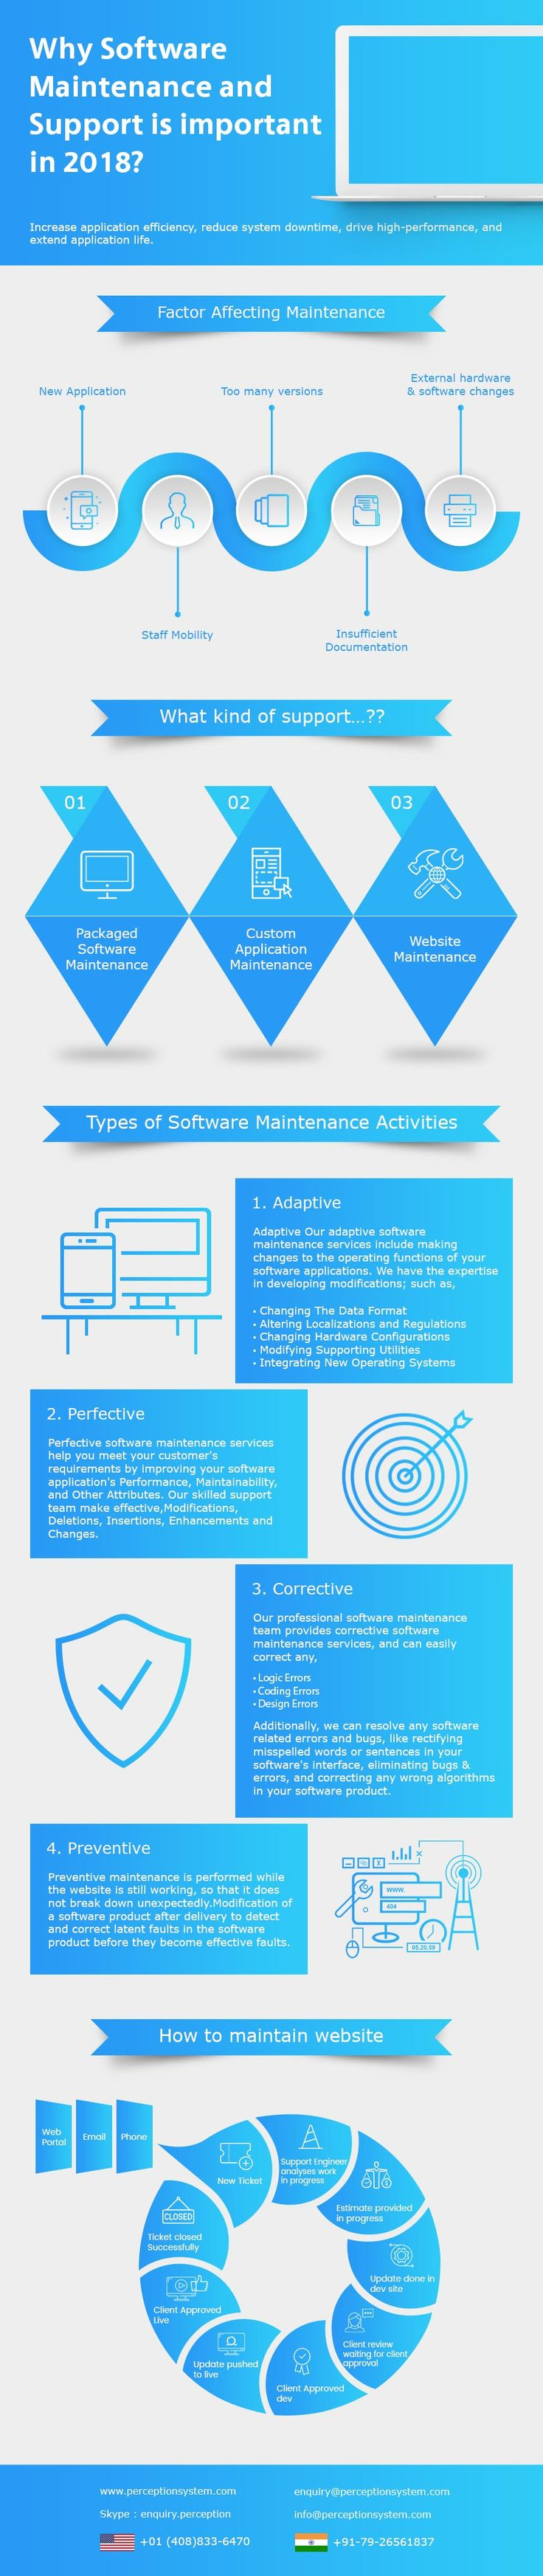 Why Software Maintenance and Support is important in 2018? – Infographics http://blogs.perceptionsystem.com/infographic/software-maintenance-support-important-2018/